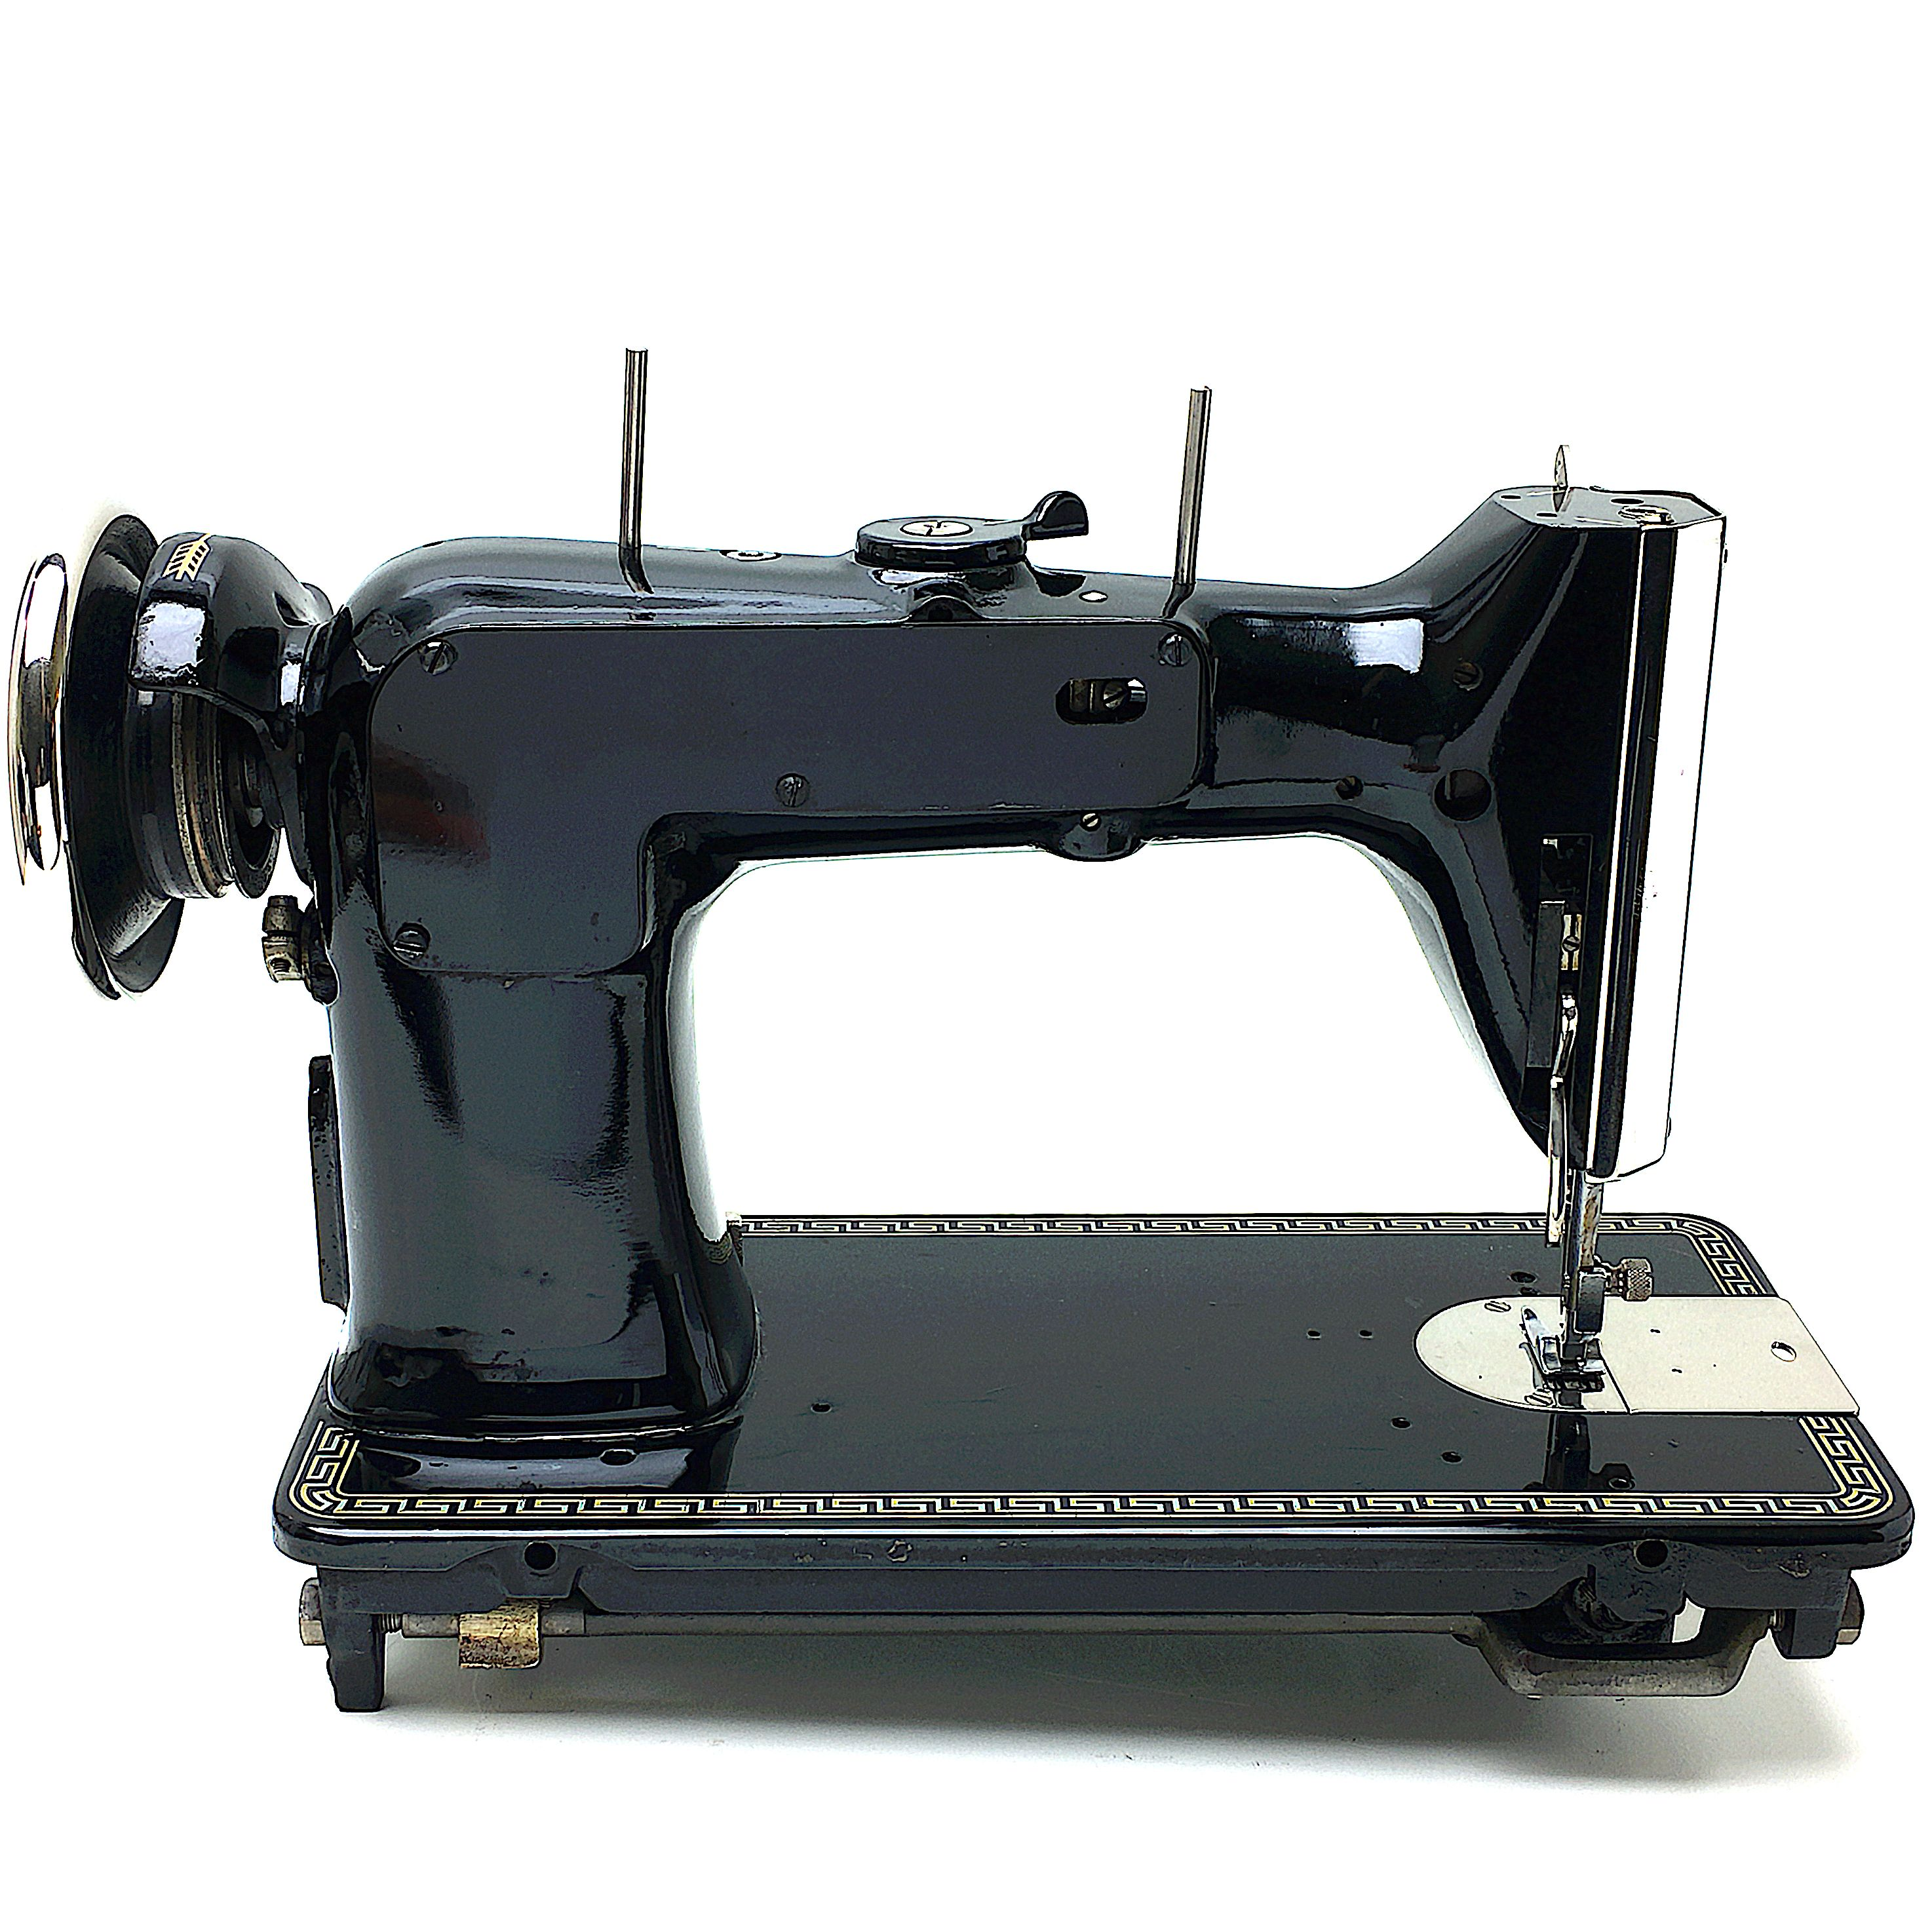 Cheap Sewing Machines Australia Meister 101 In Black Restored By 3fters Also Know As Sewmaster